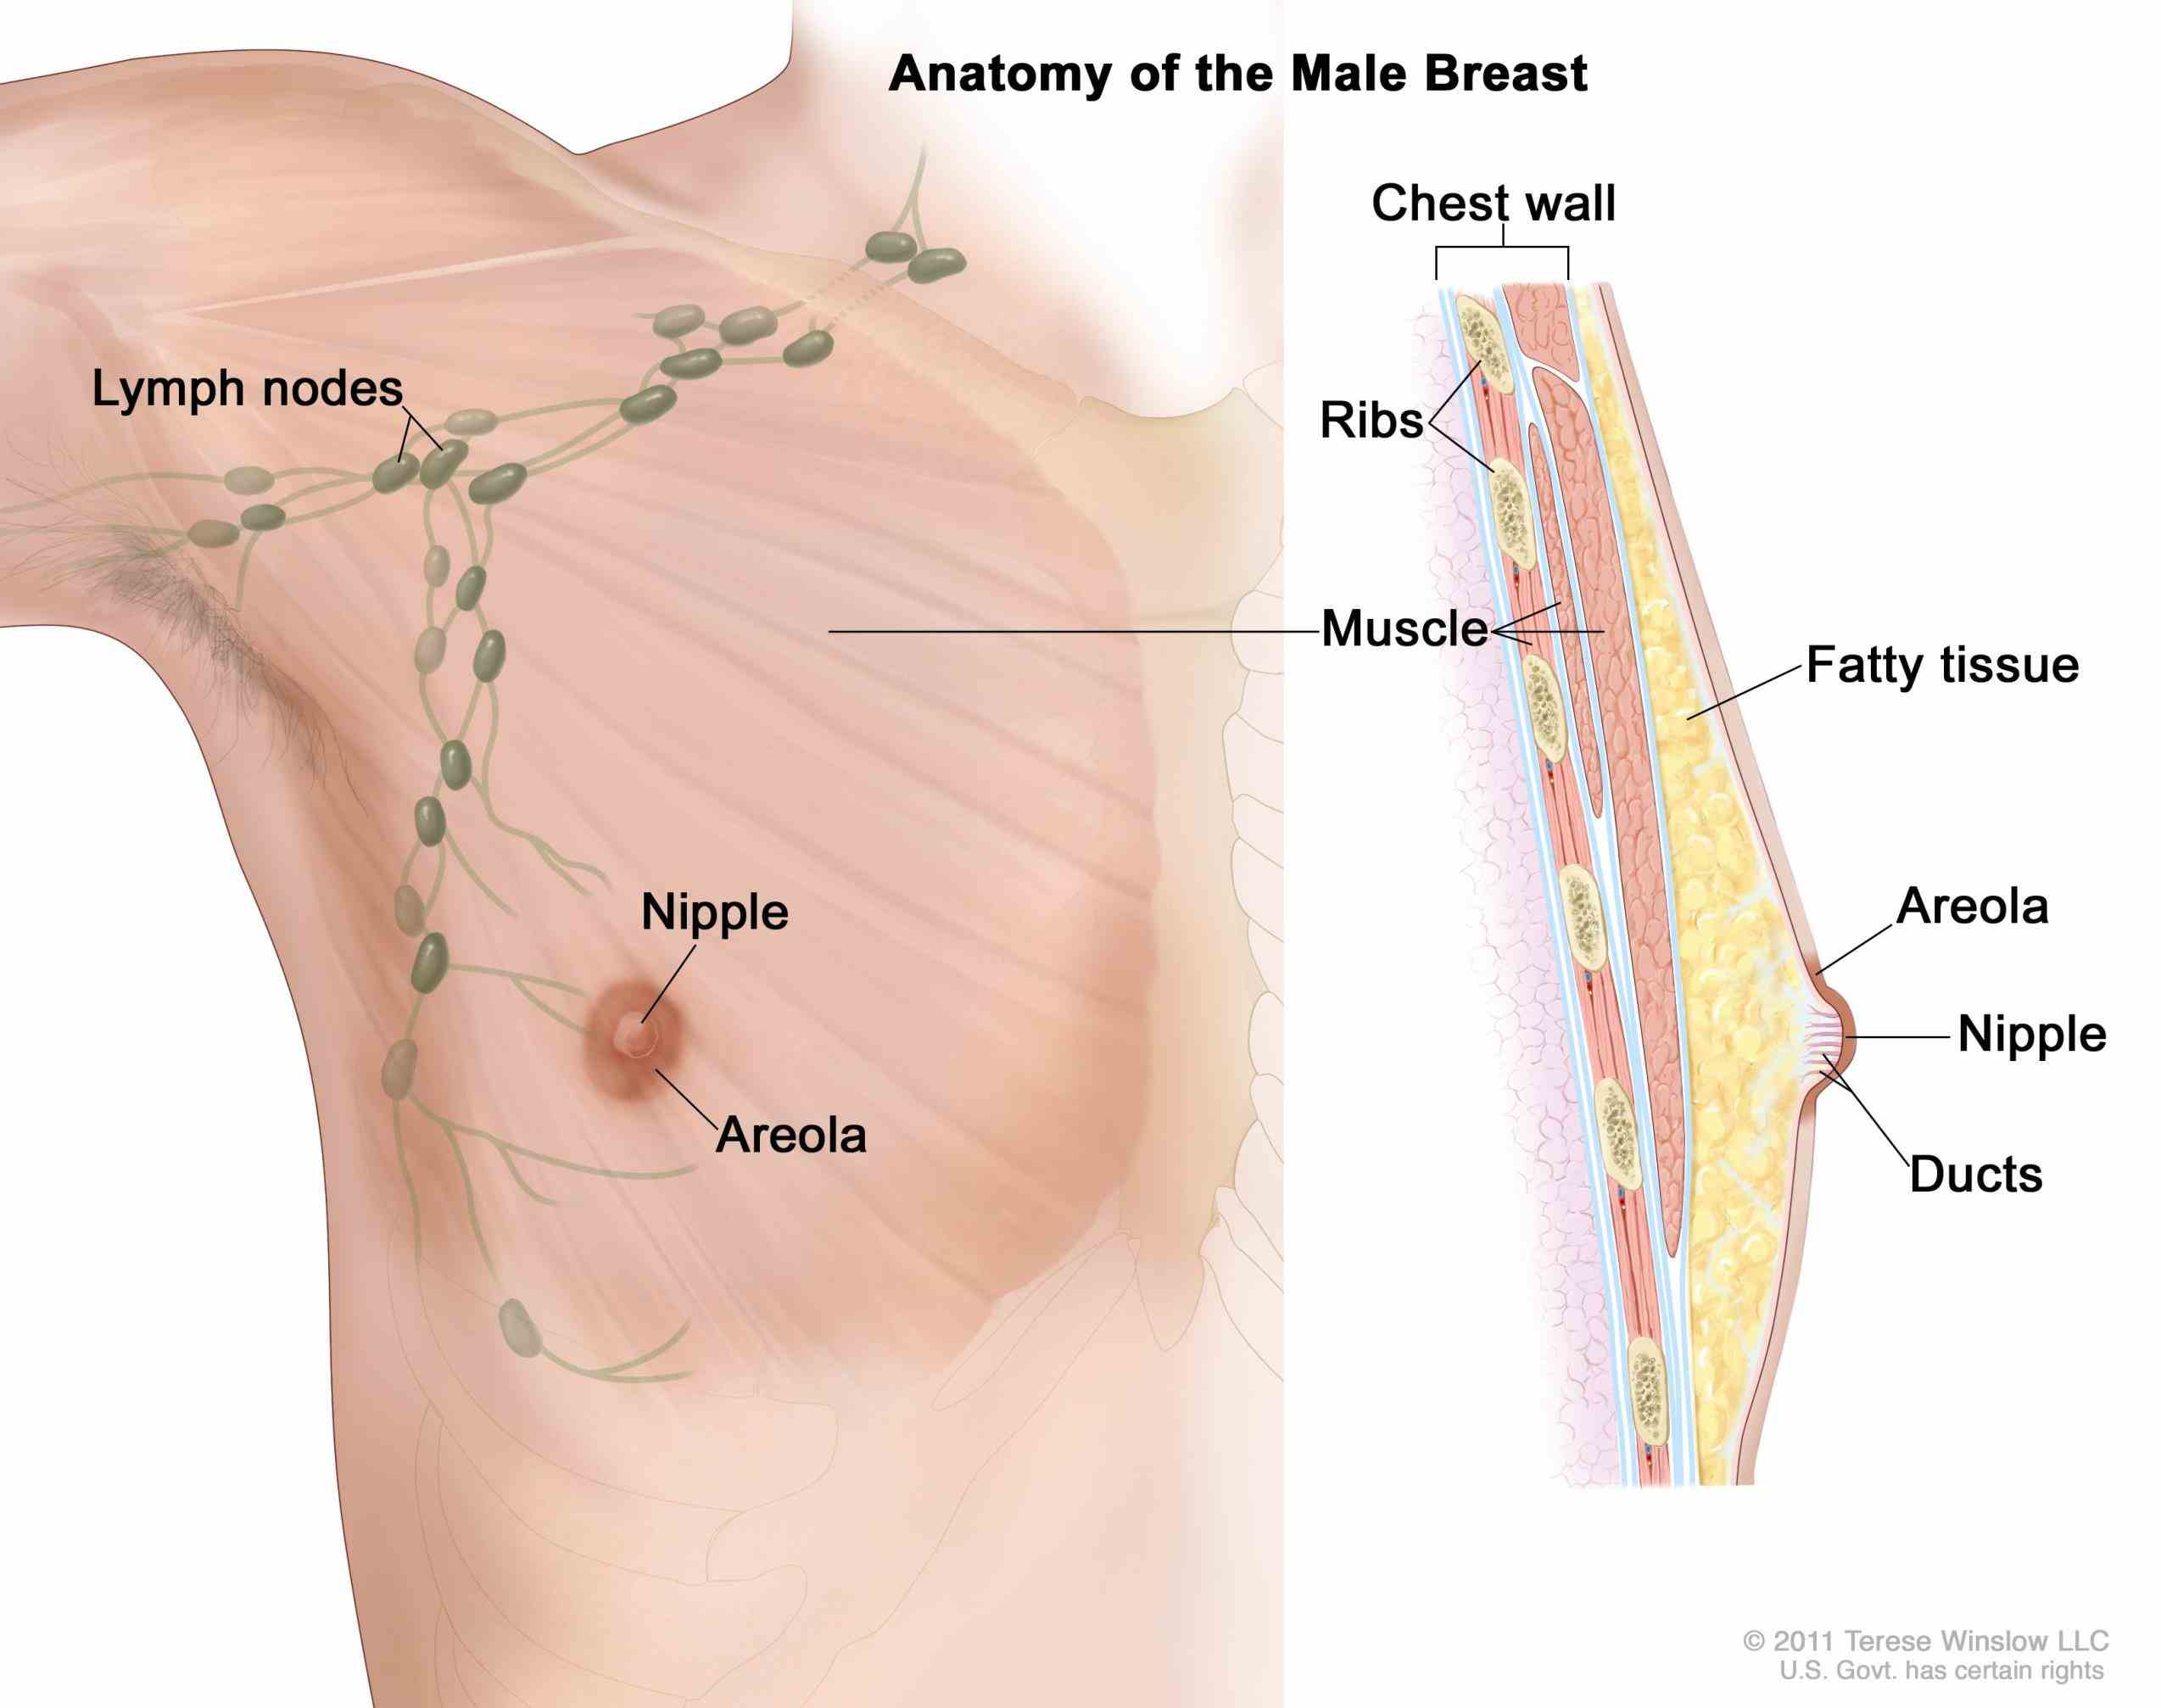 is more likely to be cancer but breast cancers